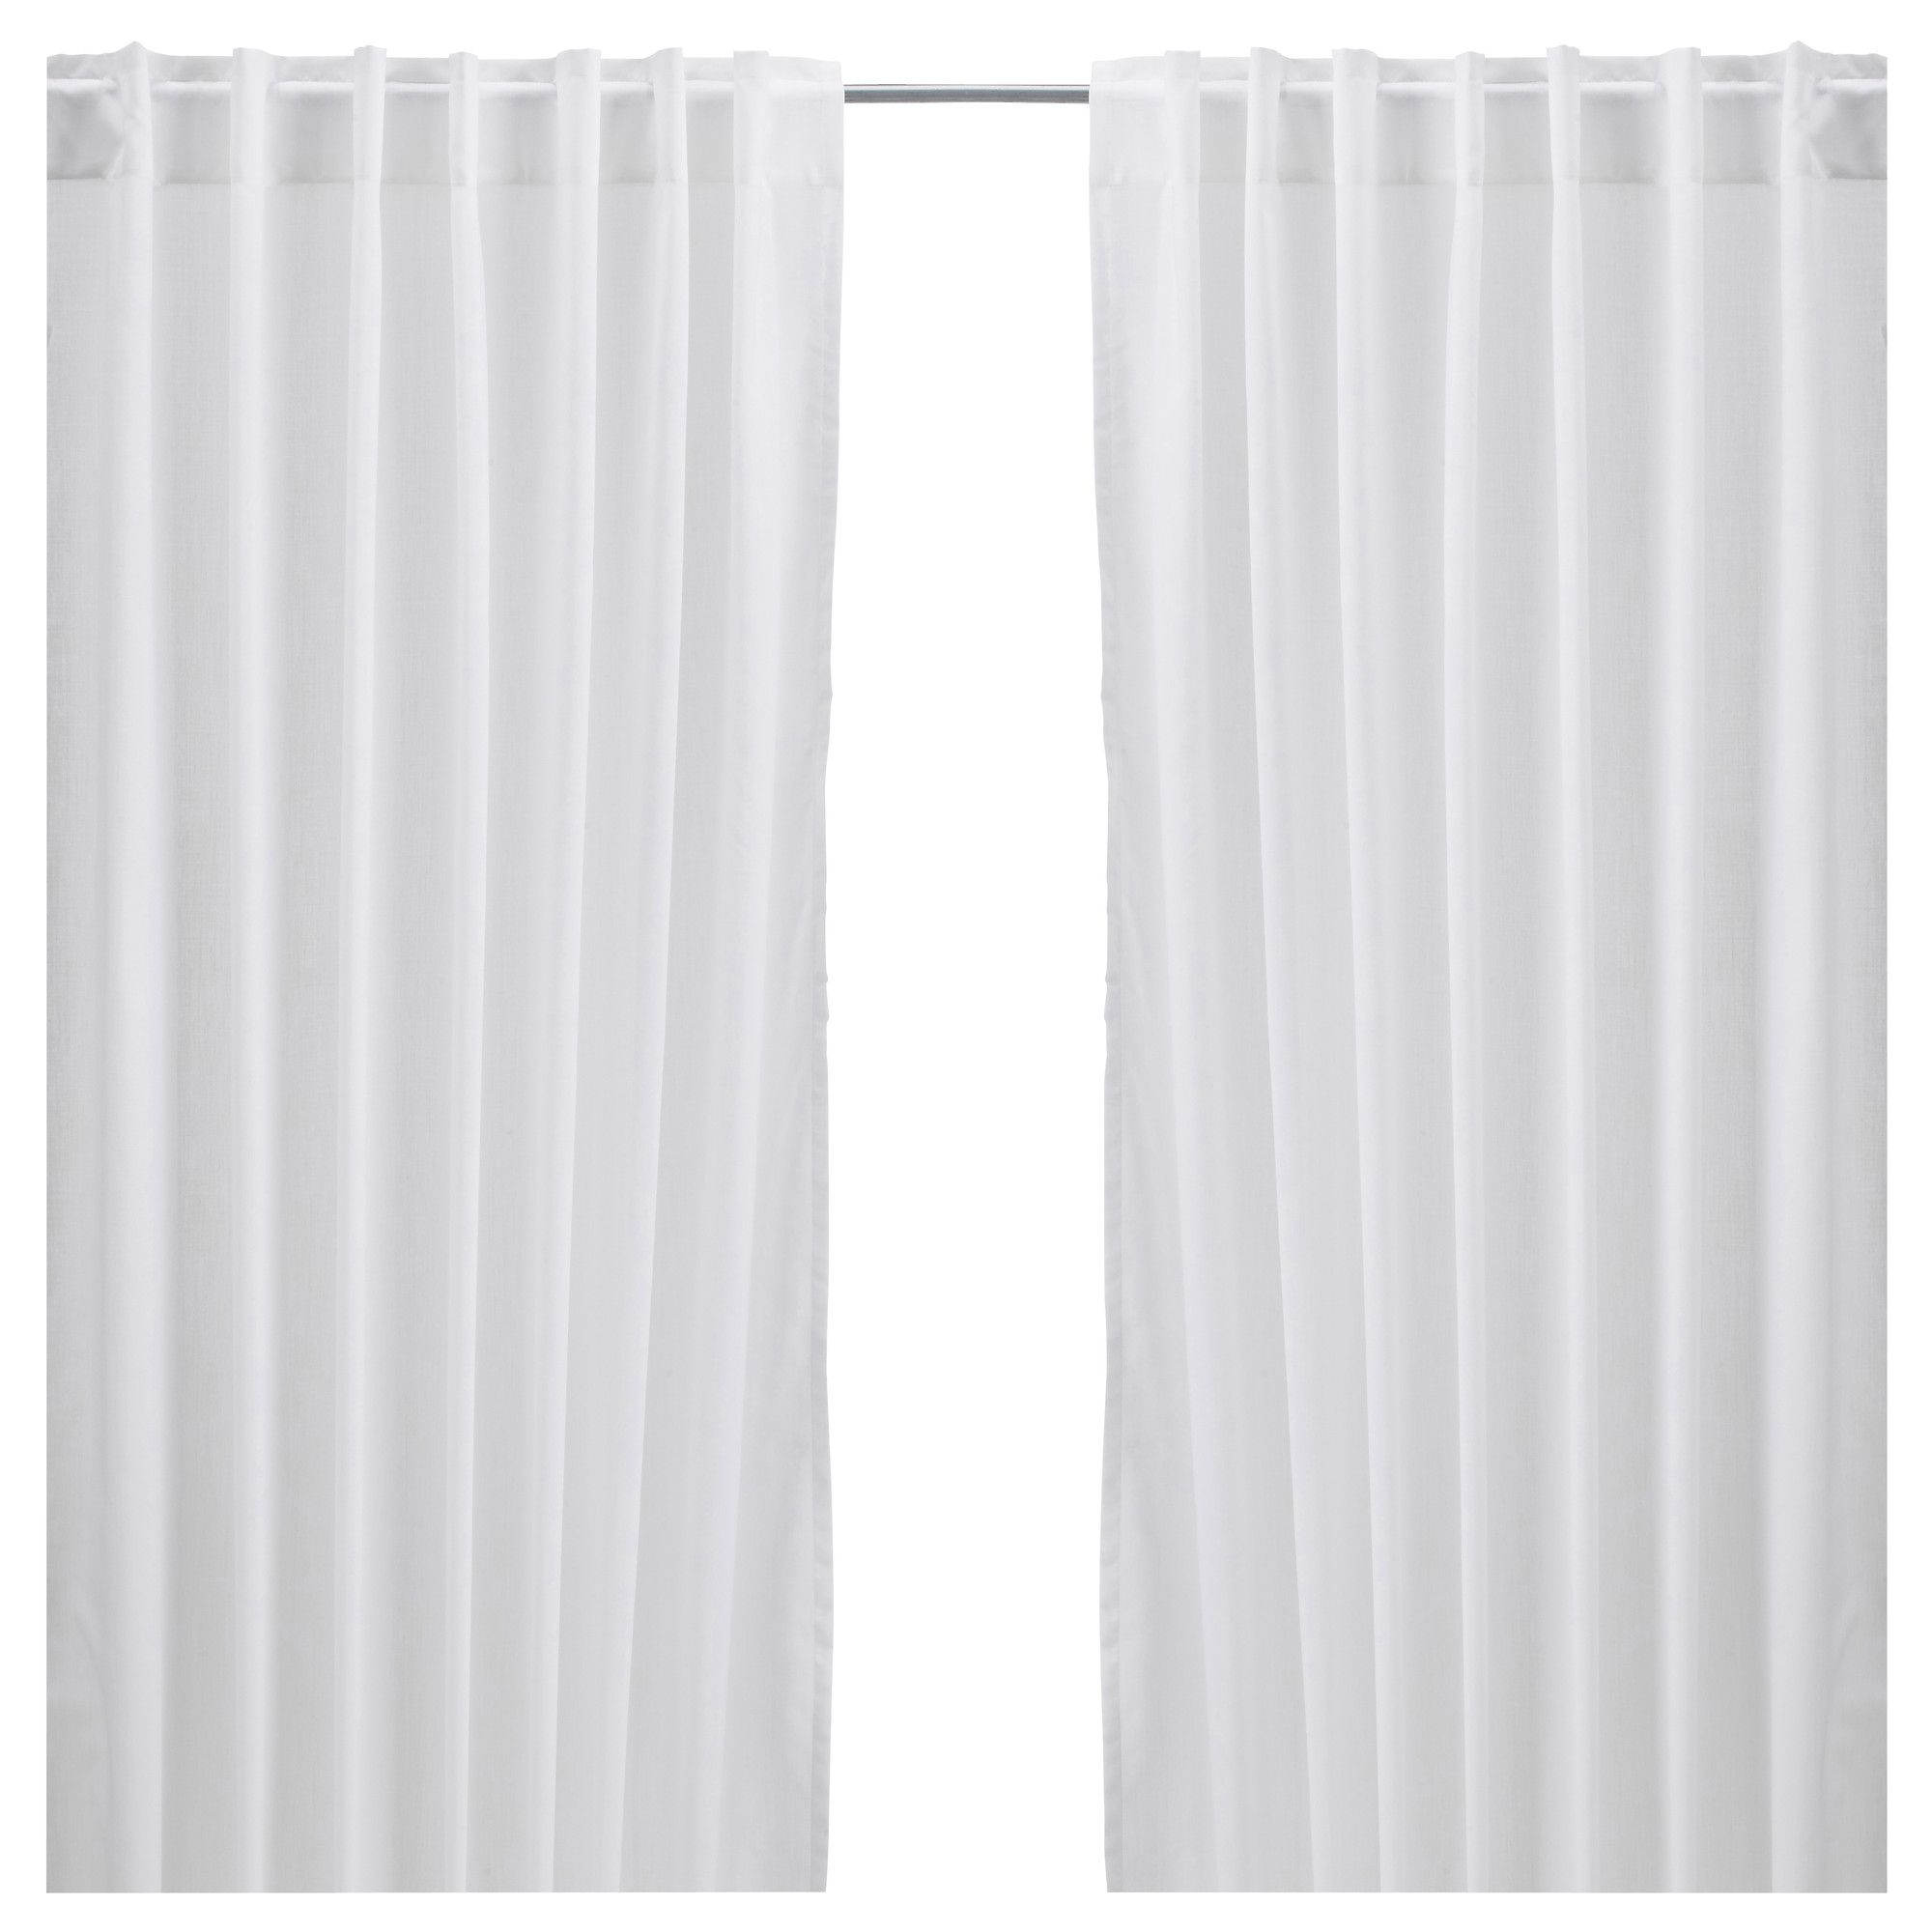 Vivan curtains 1 pair white ikea home pinterest ceiling room and living rooms - Pictures of curtains ...